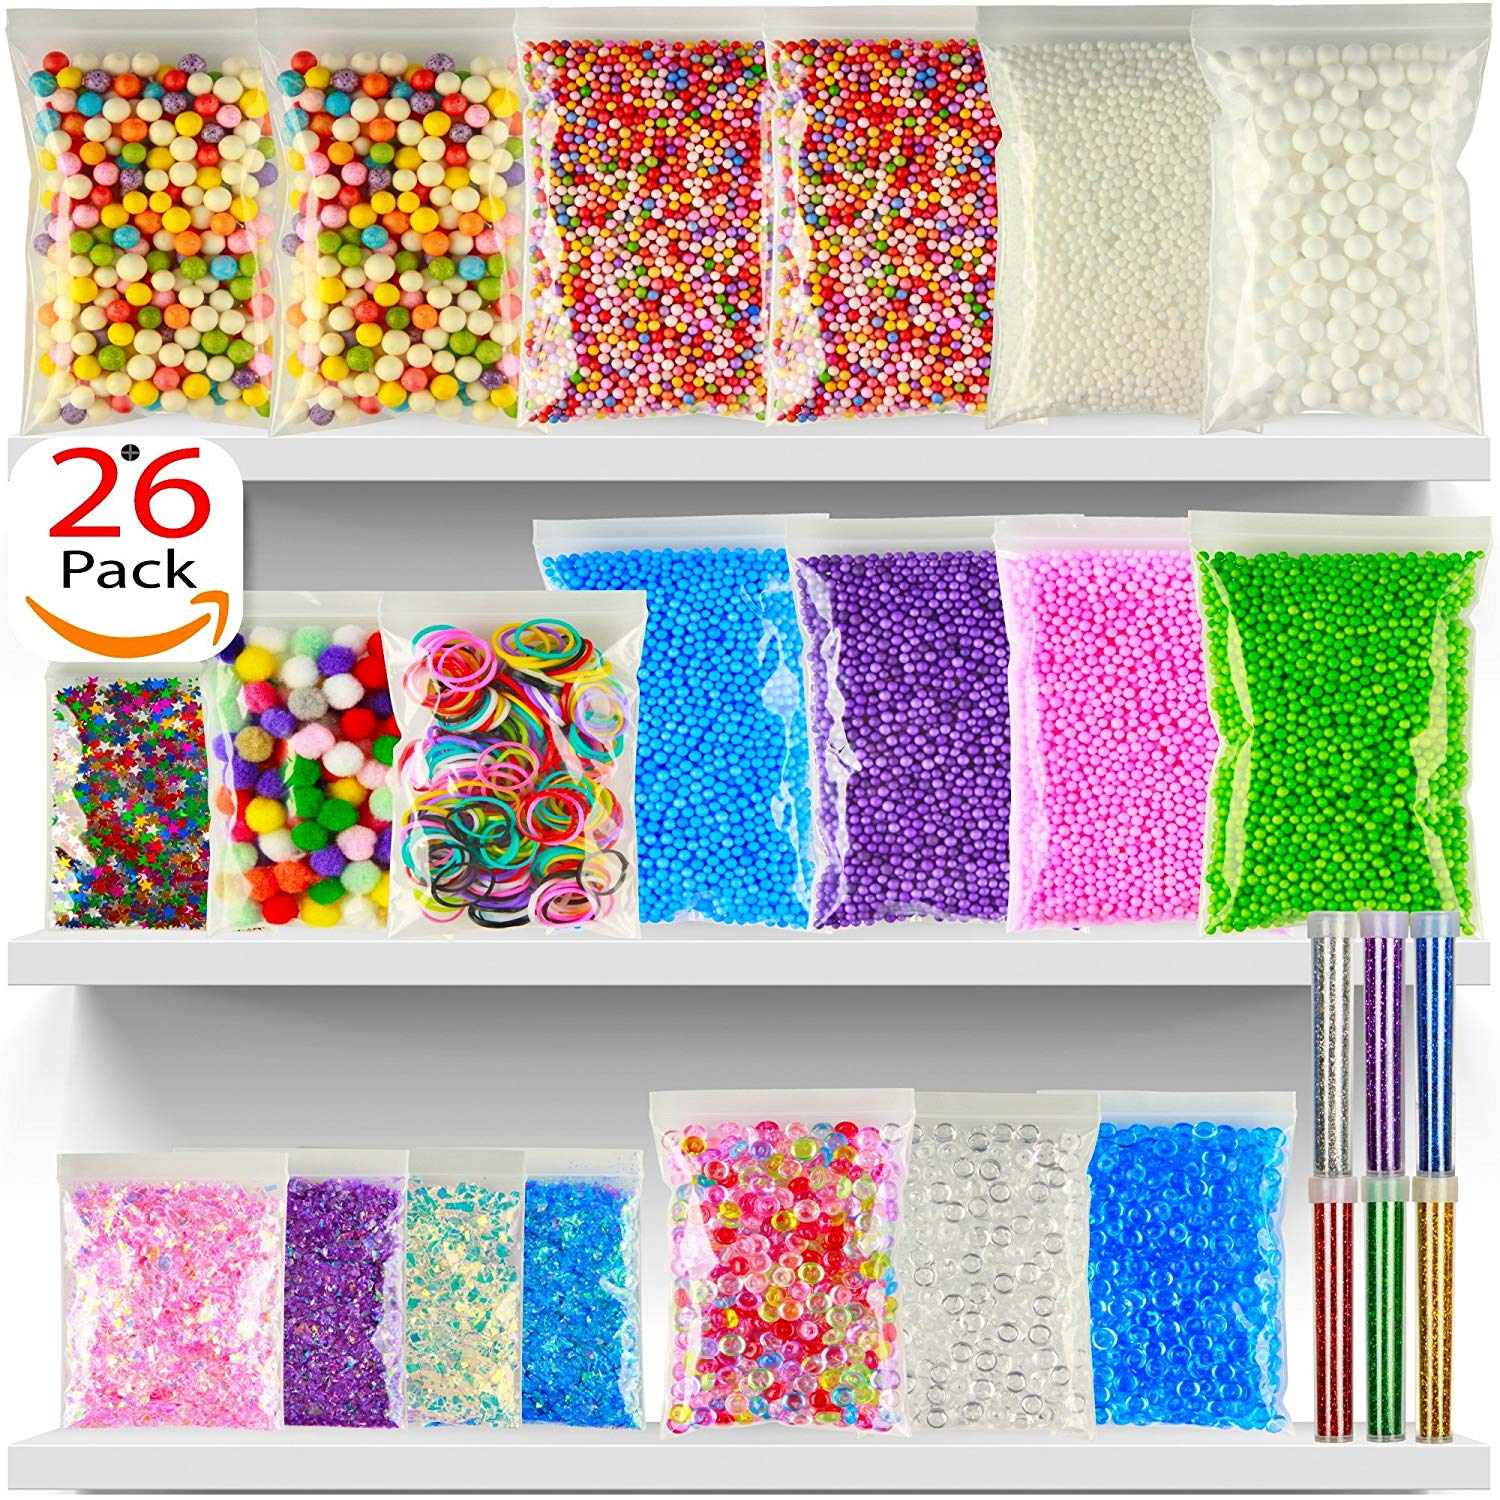 Foam Beads For Slime - 26Pack Slime Beads - Rainbow Floam Beads For Slime - Colorful Styrofoam Beads Kit - Foam Balls Set - Fishbowl Beads - Supplies For Slime Making Art DIY Craft For Kids Girls Boys